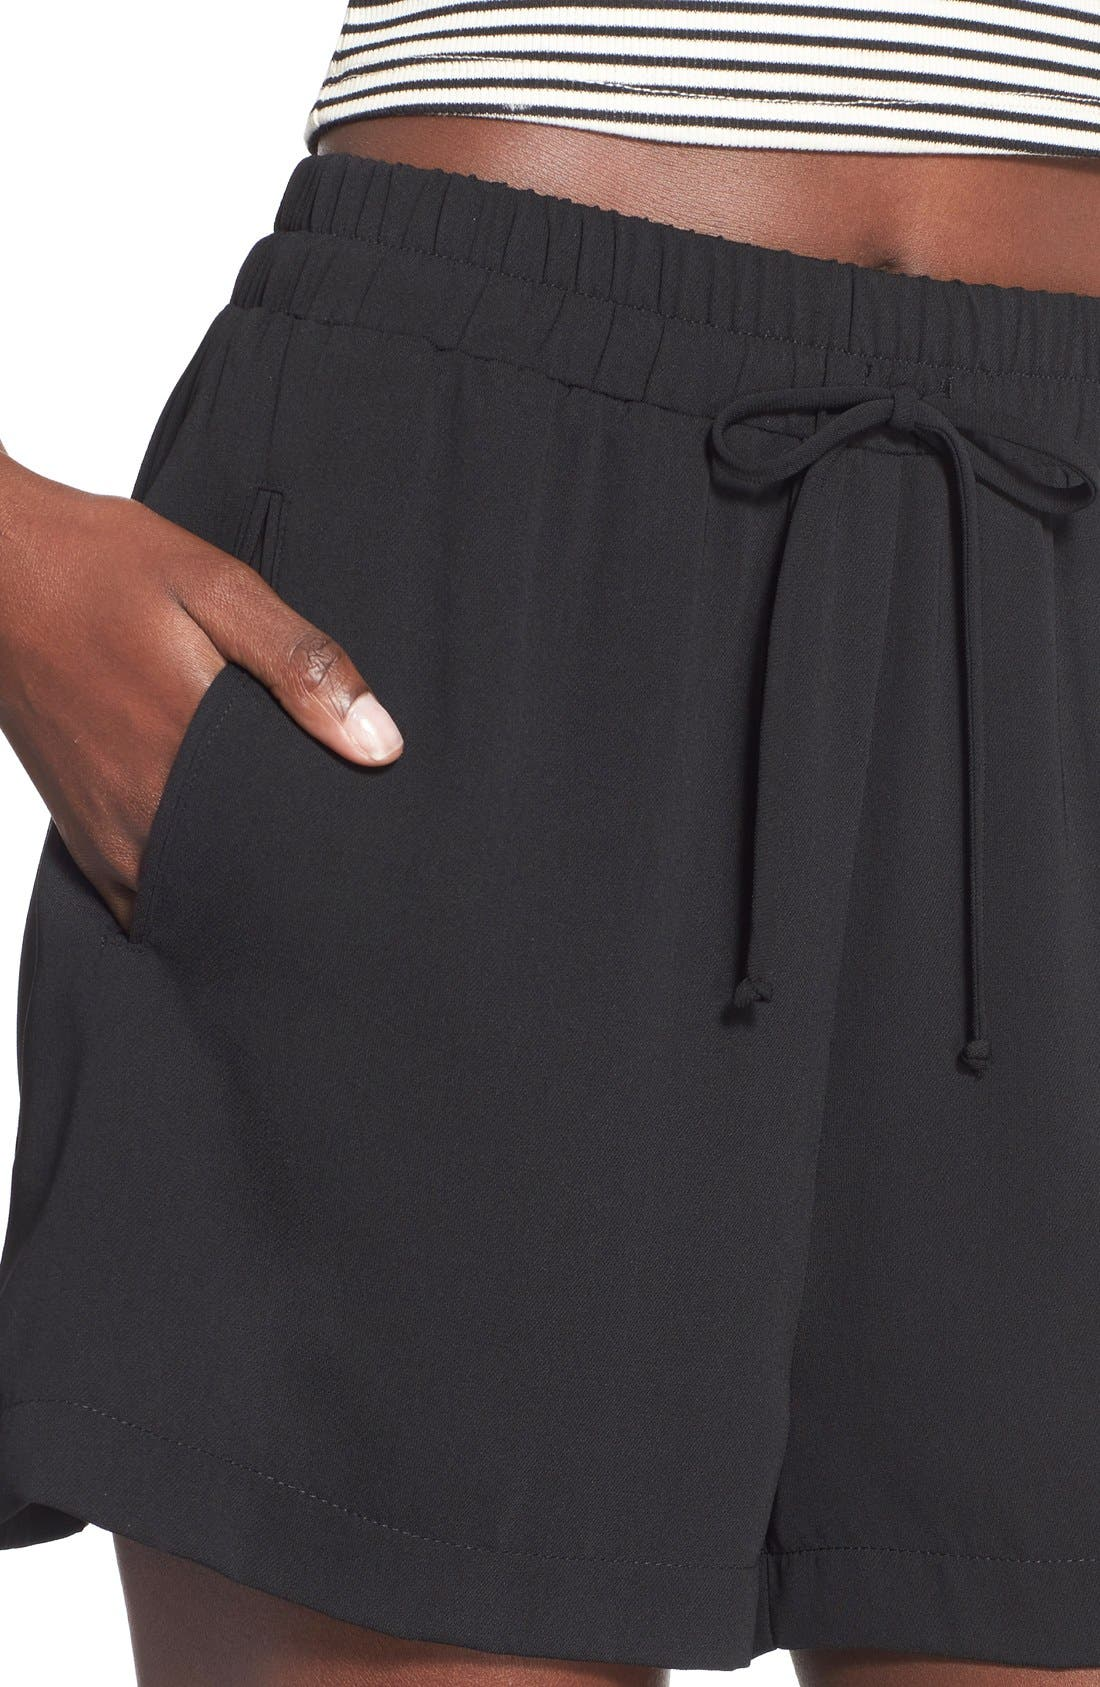 ---, Drawstring Shorts, Alternate thumbnail 4, color, 001